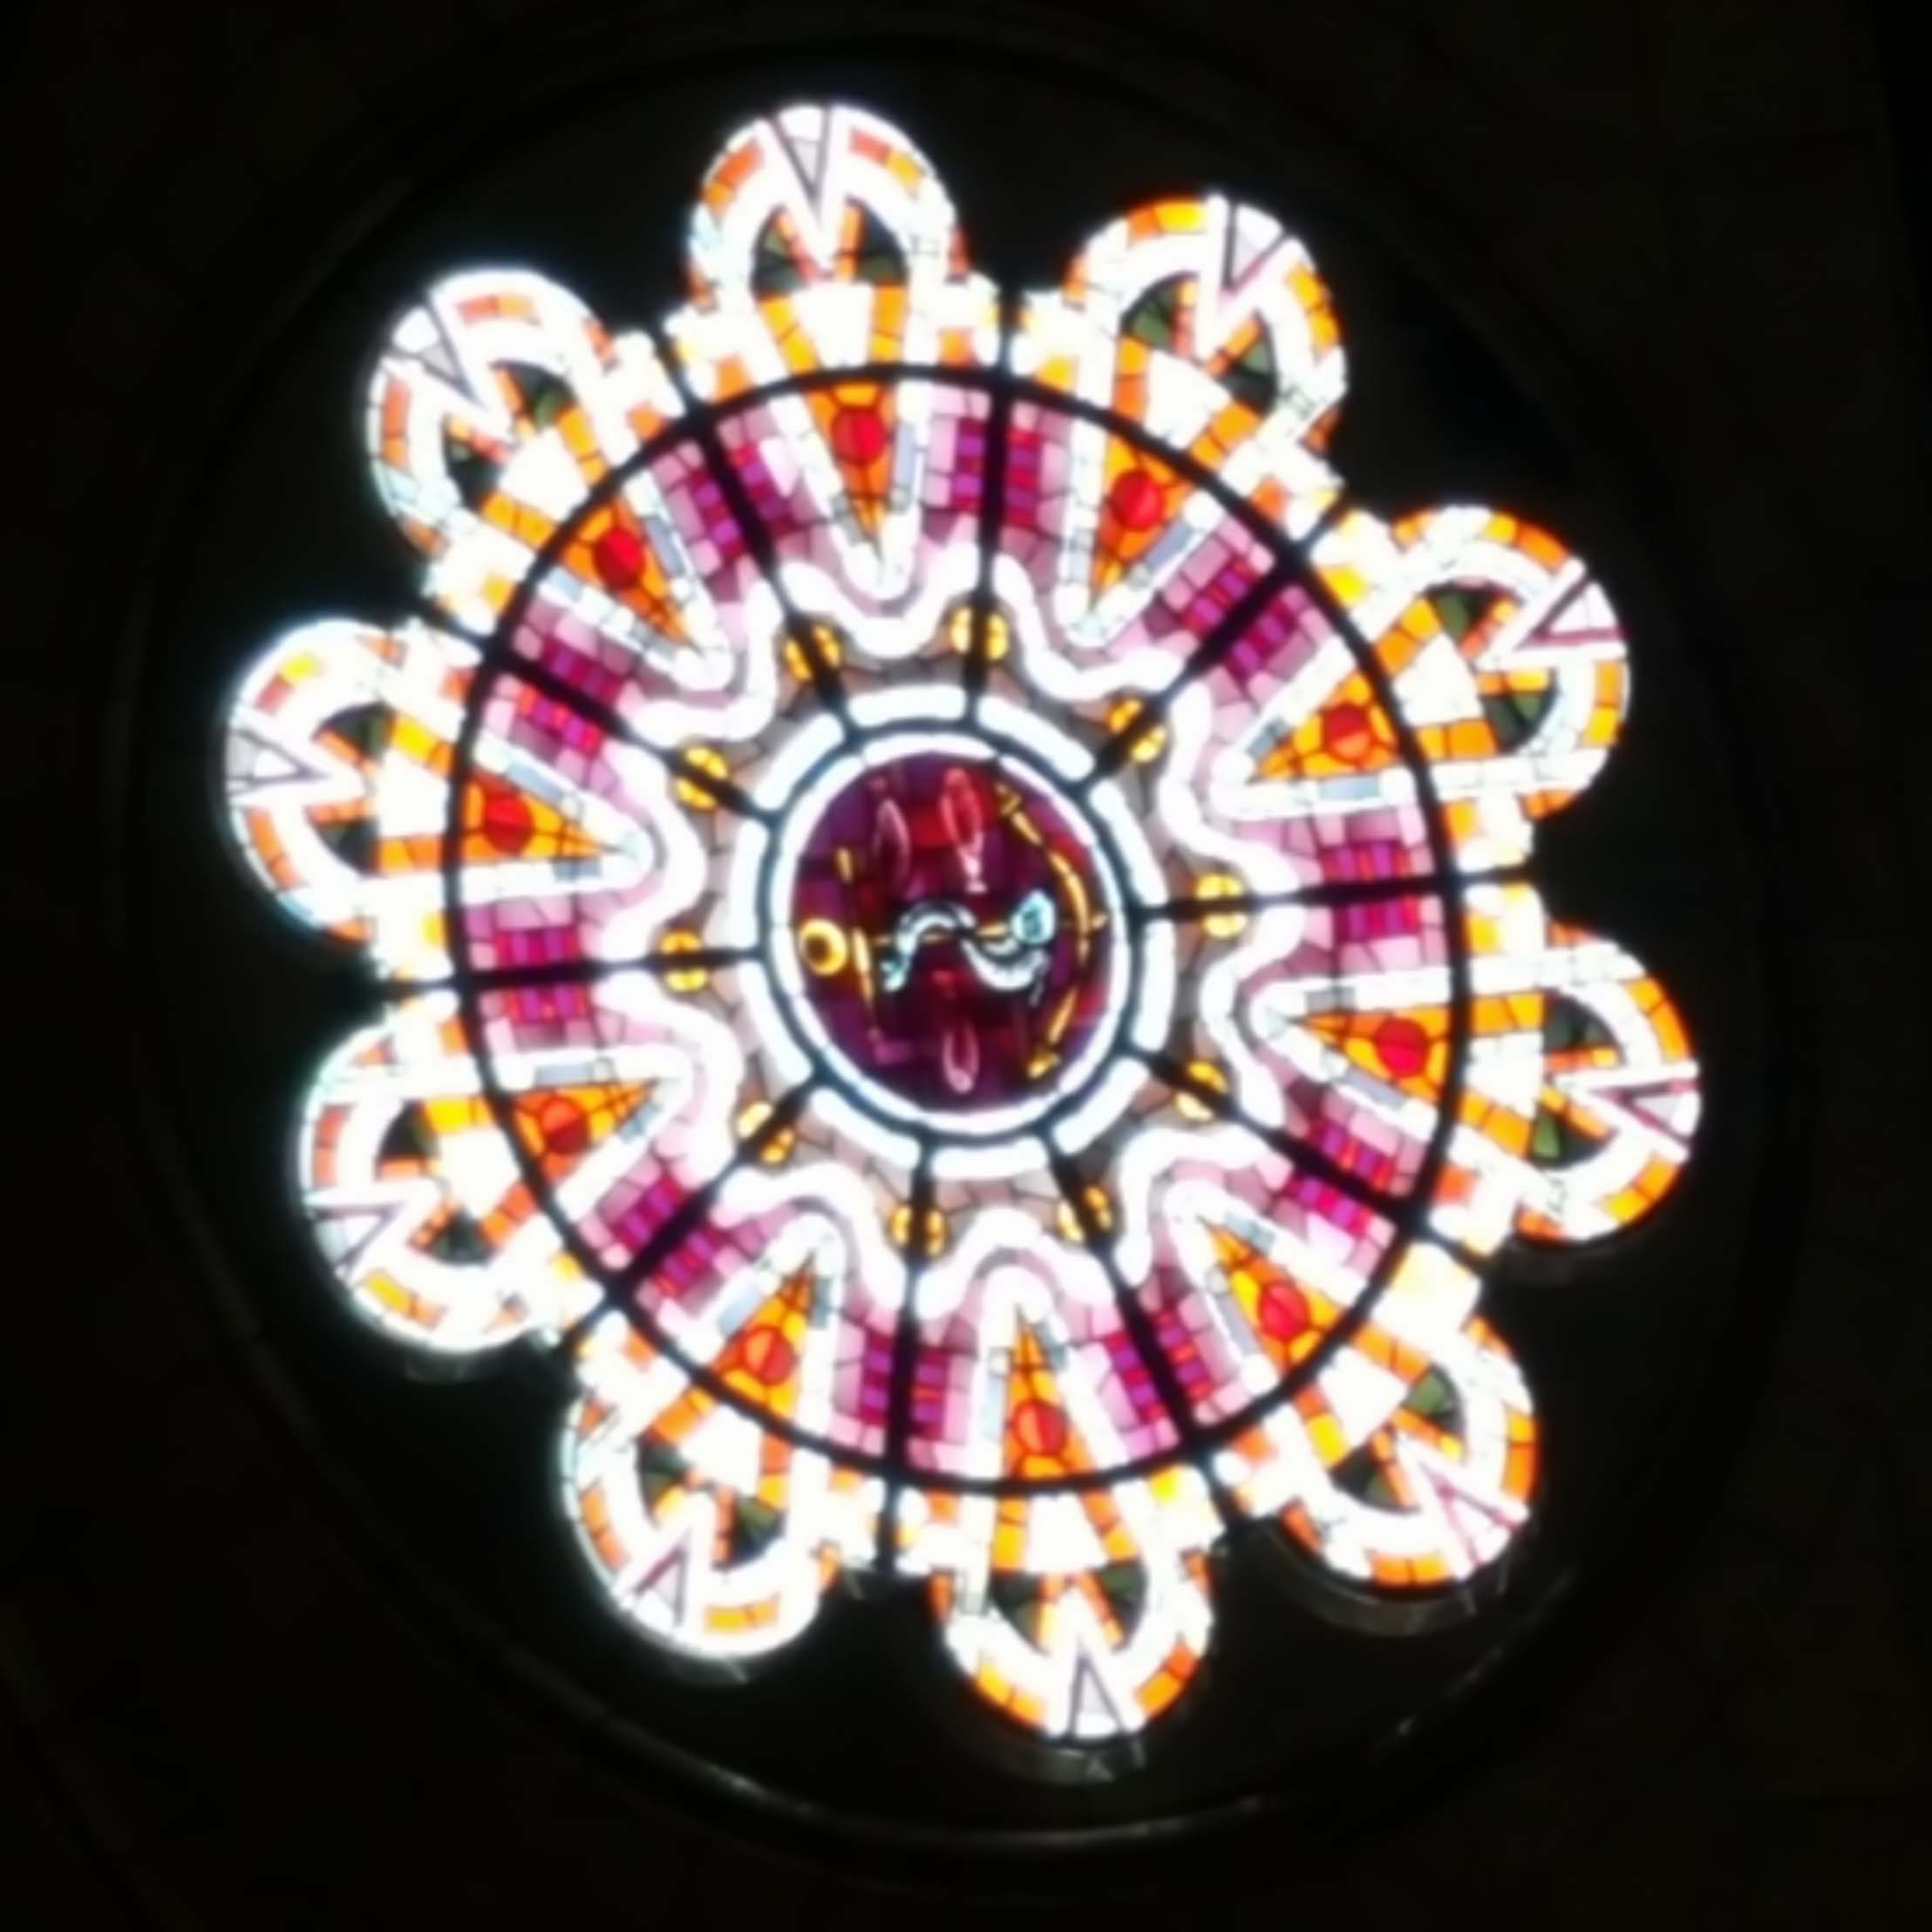 stained glassjpg